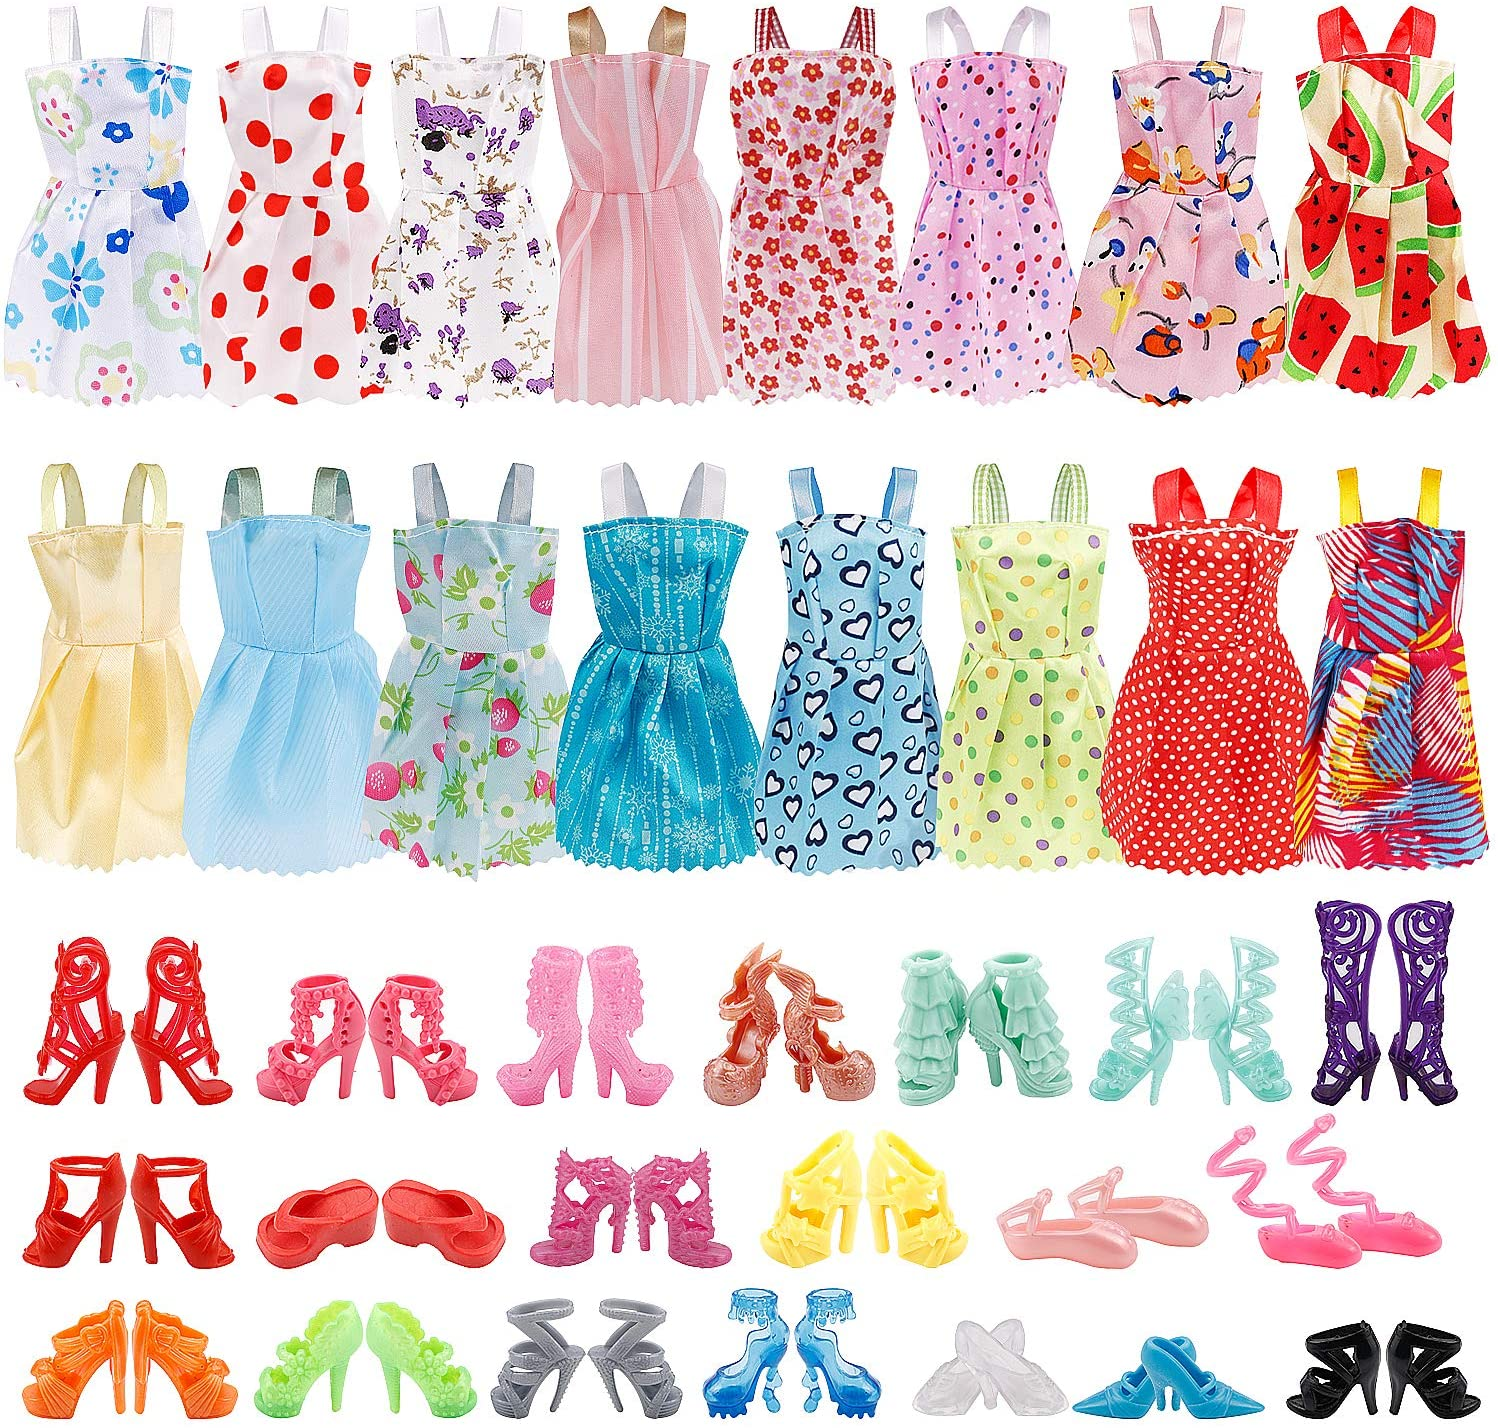 UPINS 16 Pack Doll Clothes Accessory Party Grown Clothes Outfit and 20 Pairs Doll Shoes Compatible with Doll